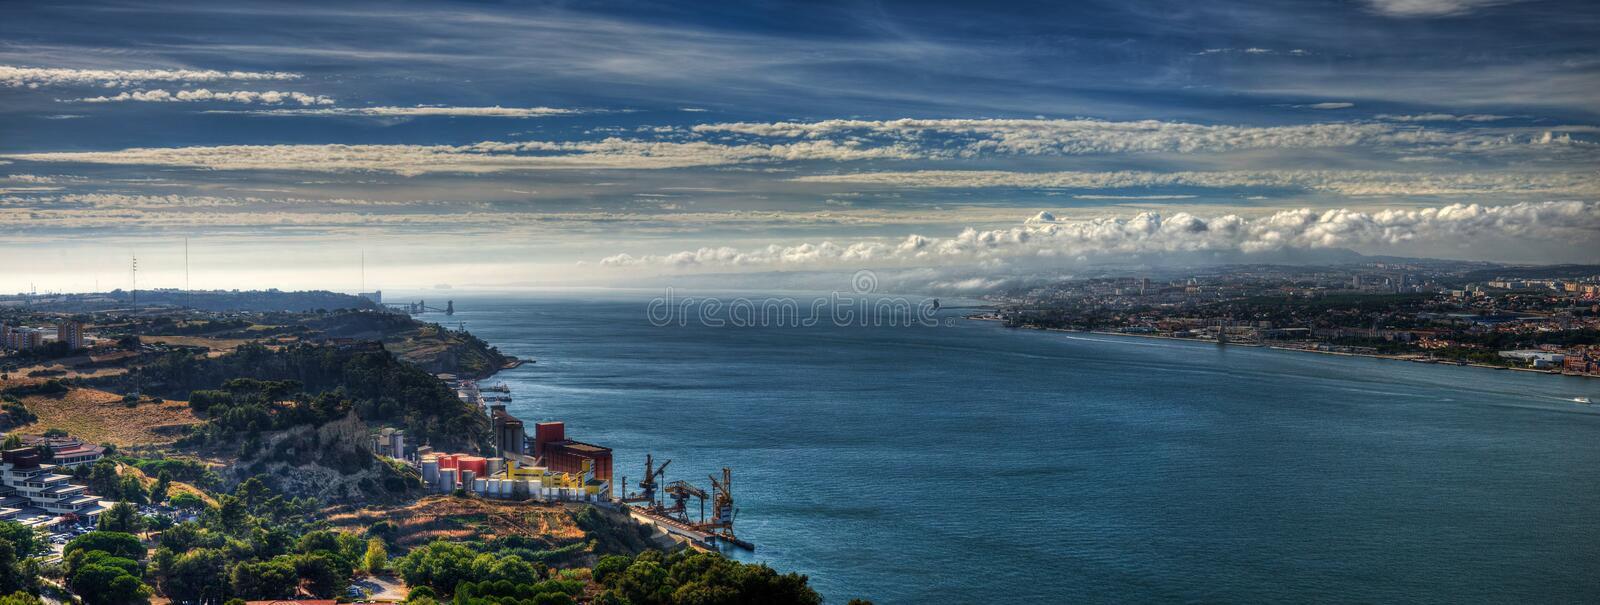 Panorama Tagus River fotografia de stock royalty free